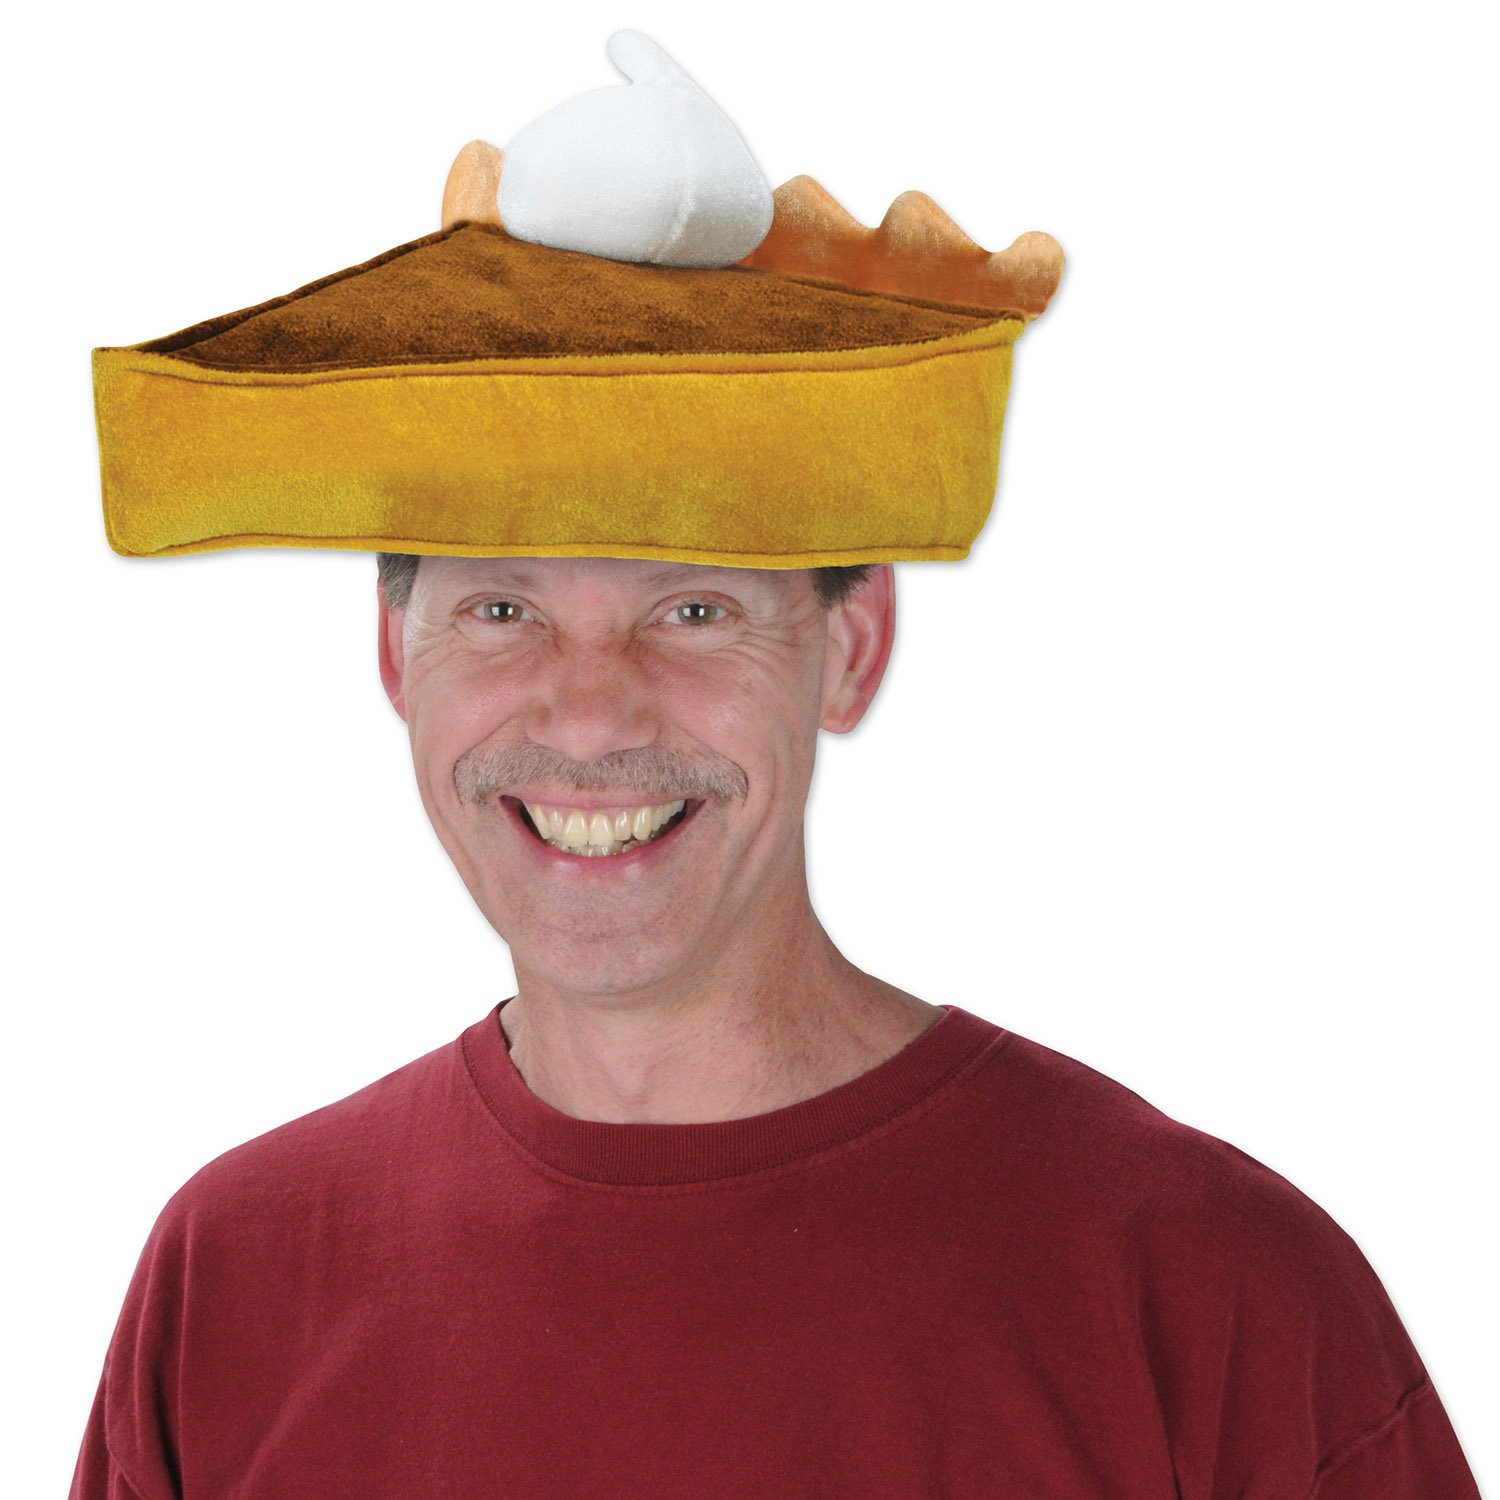 Amazon.com  Beistle 1-Pack Decorative Plush Pumpkin Pie Hat  Kitchen    Dining de9241e240d